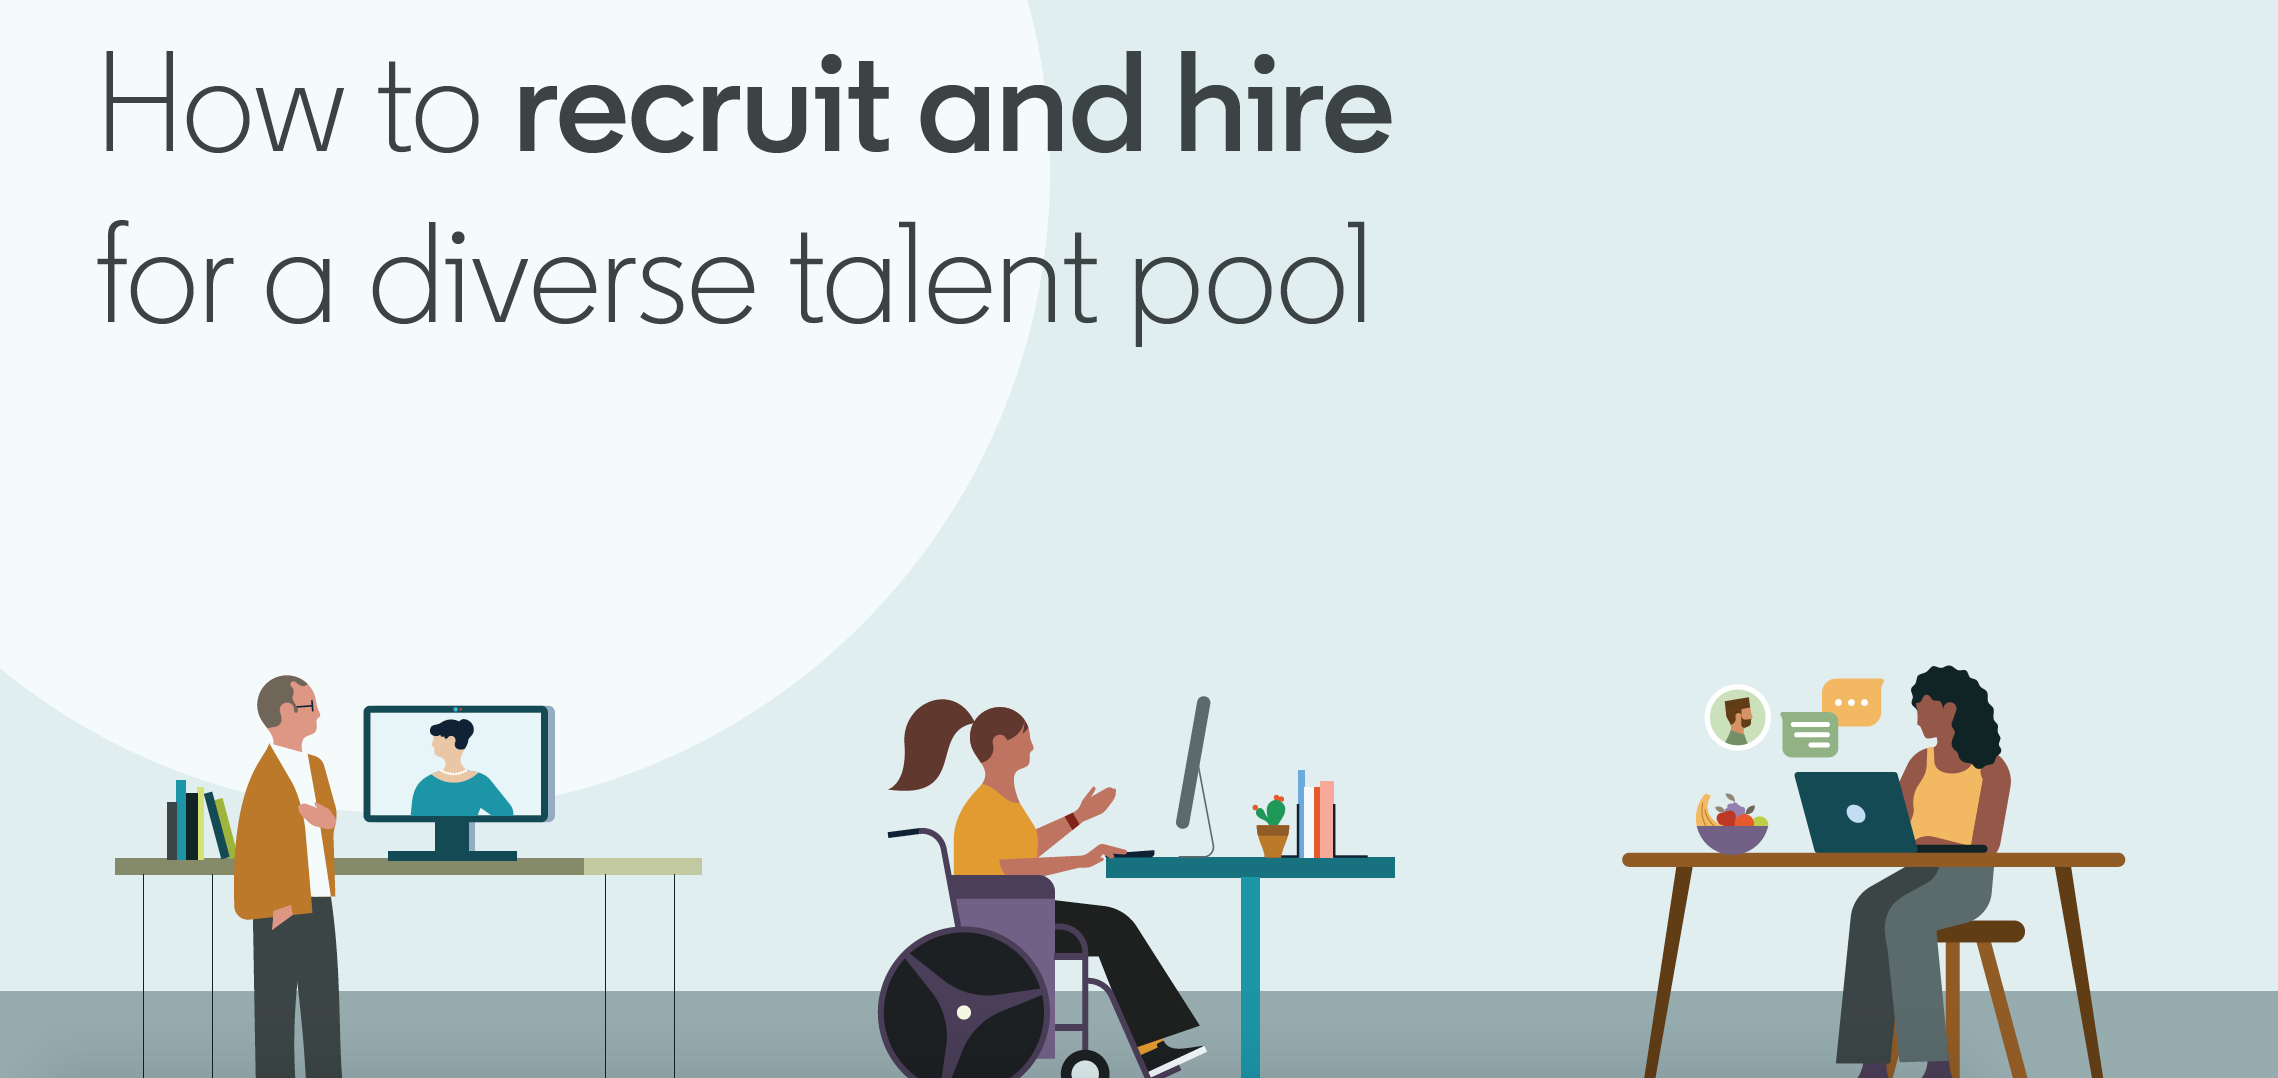 How to Recruit and Hire for Diverse Talent Pool